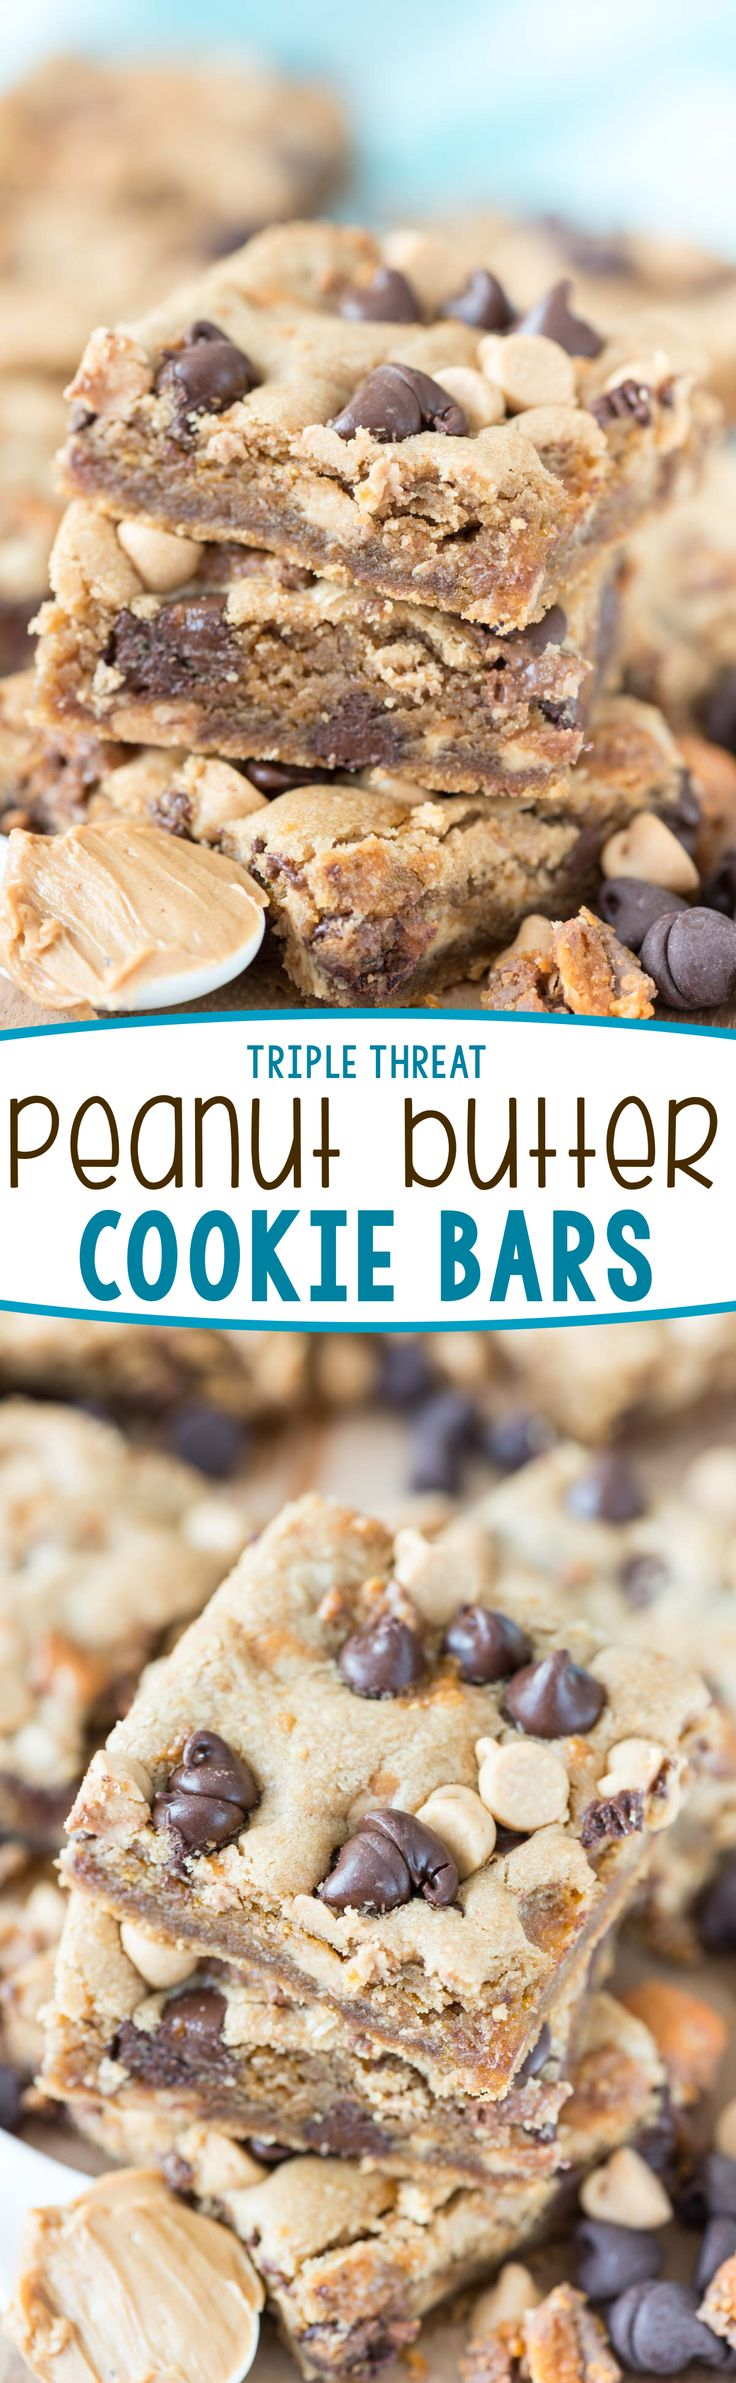 Triple Threat Peanut Butter Cookie Bars - this easy peanut butter cookie recipe…